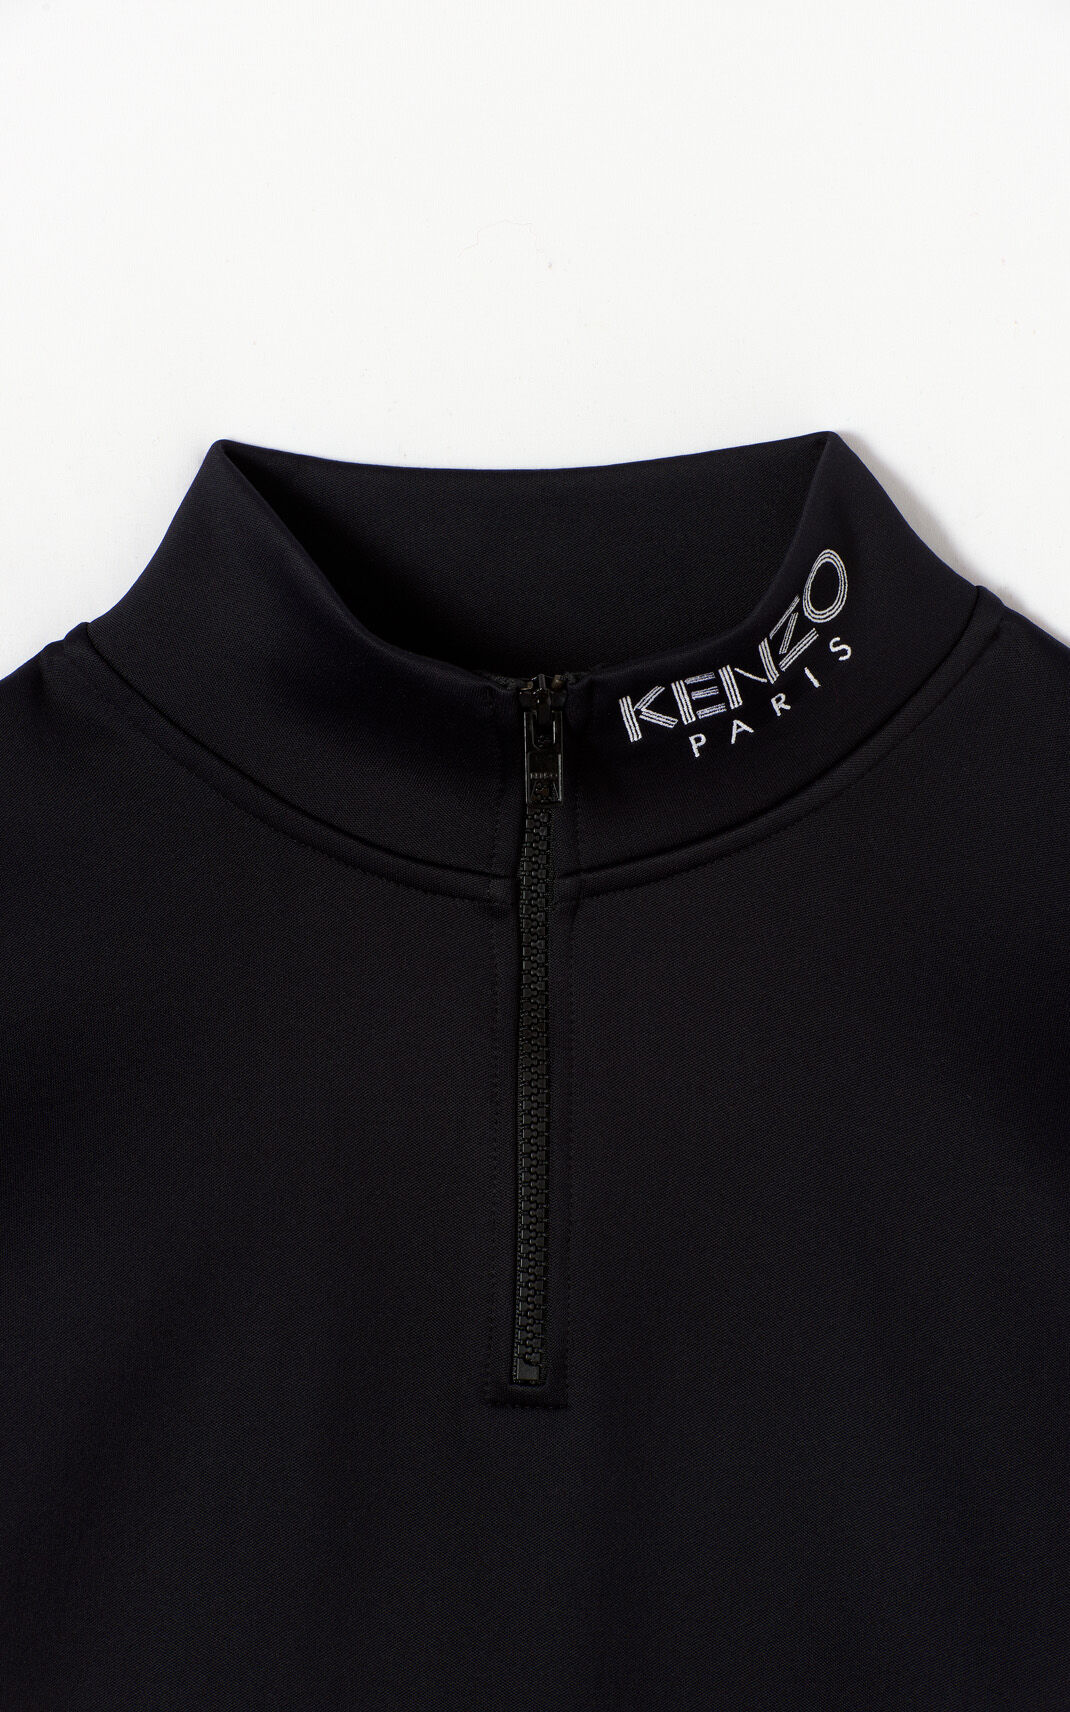 BLACK Kenzo Logo crop top for women